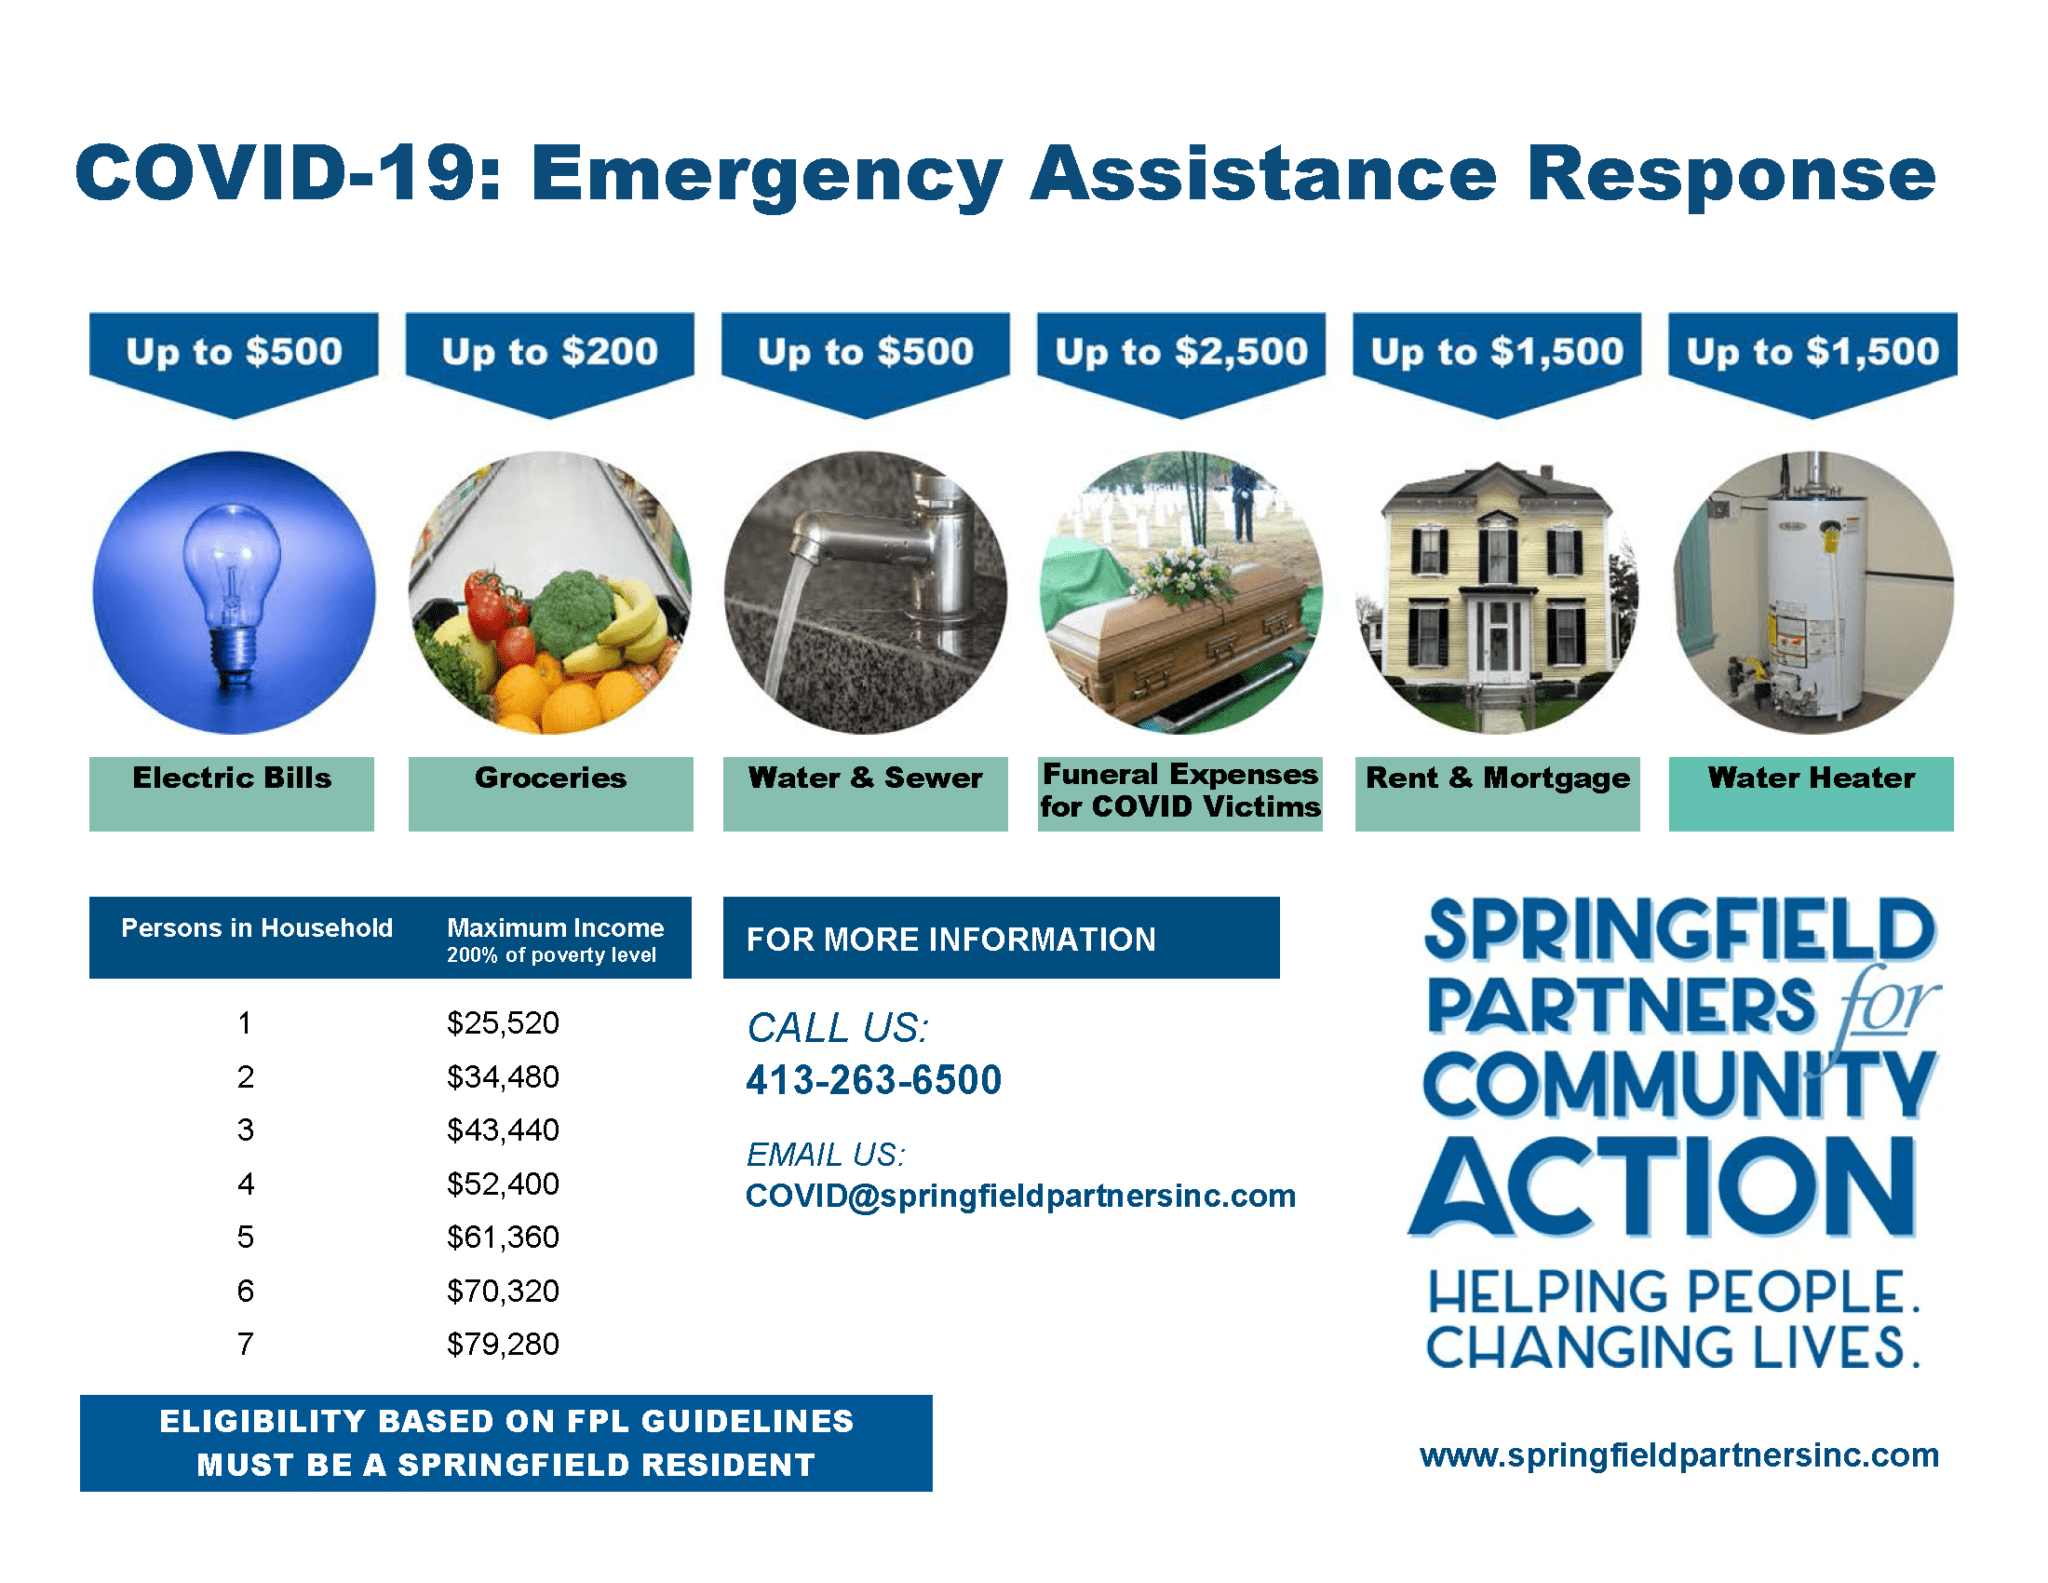 Springfield Partners for Community Action emergency assistance response details.